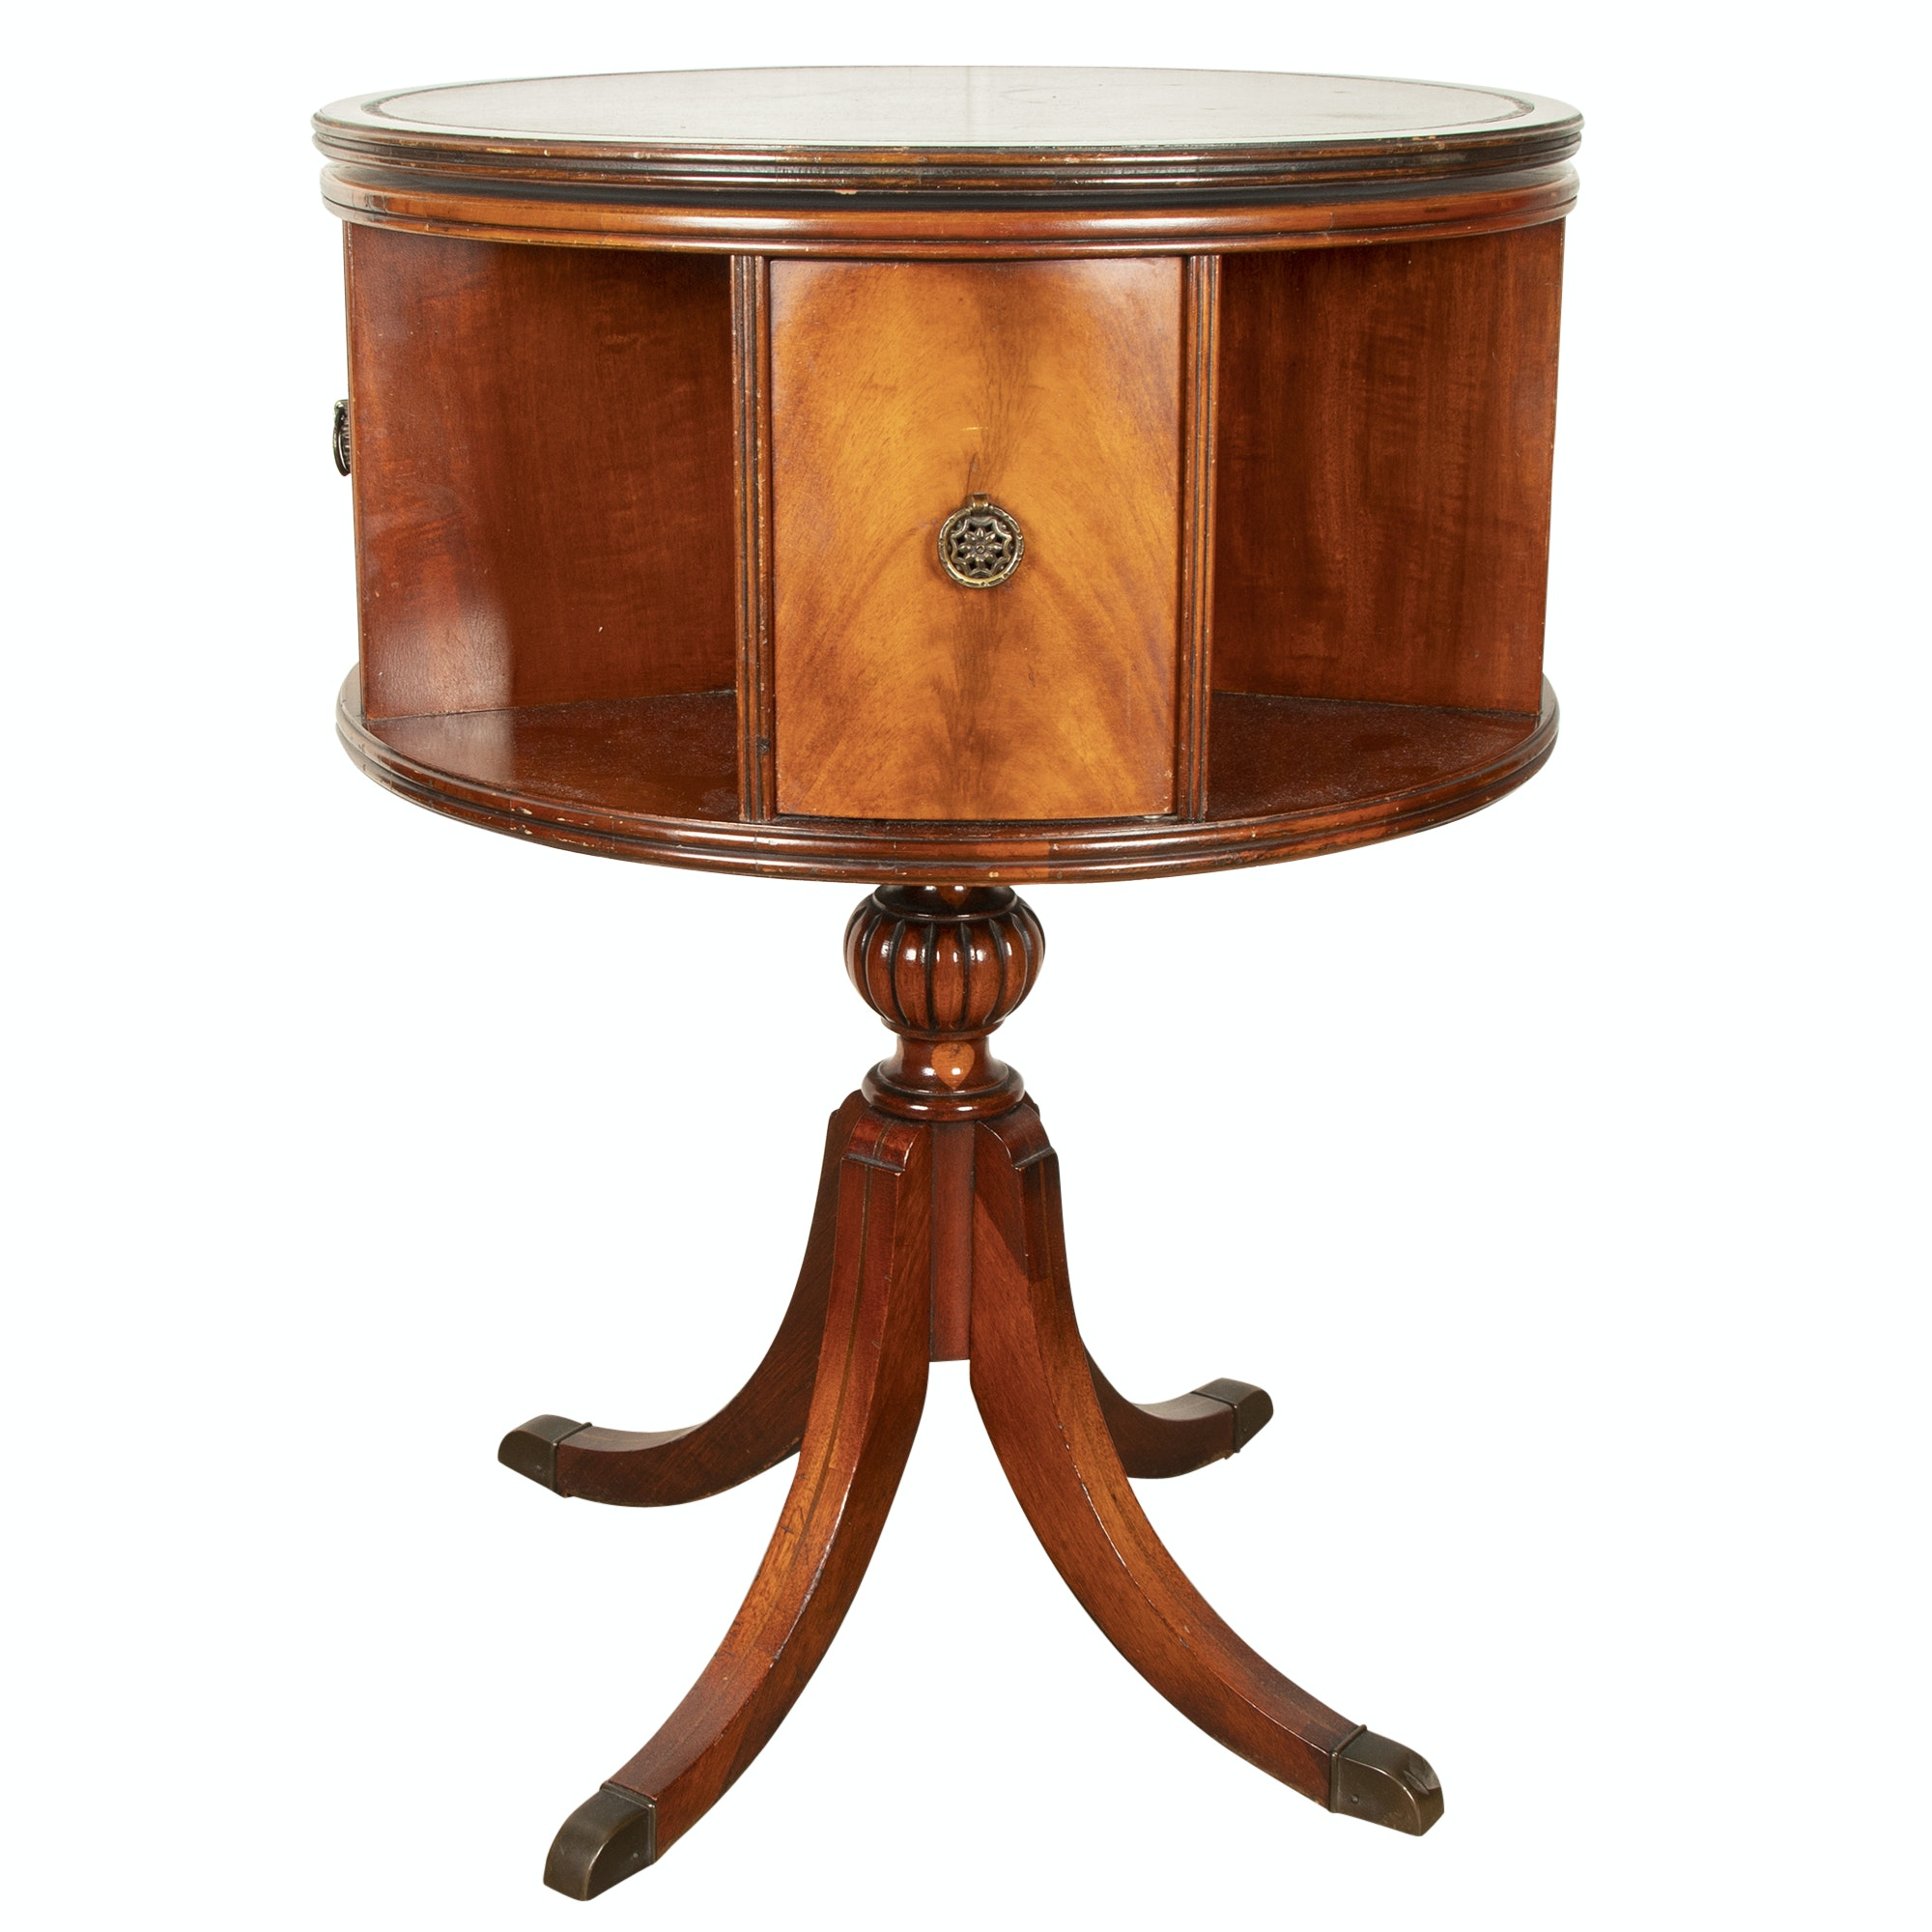 Federal Style Mahogany Rotating Drum Table, Mid-20th Century